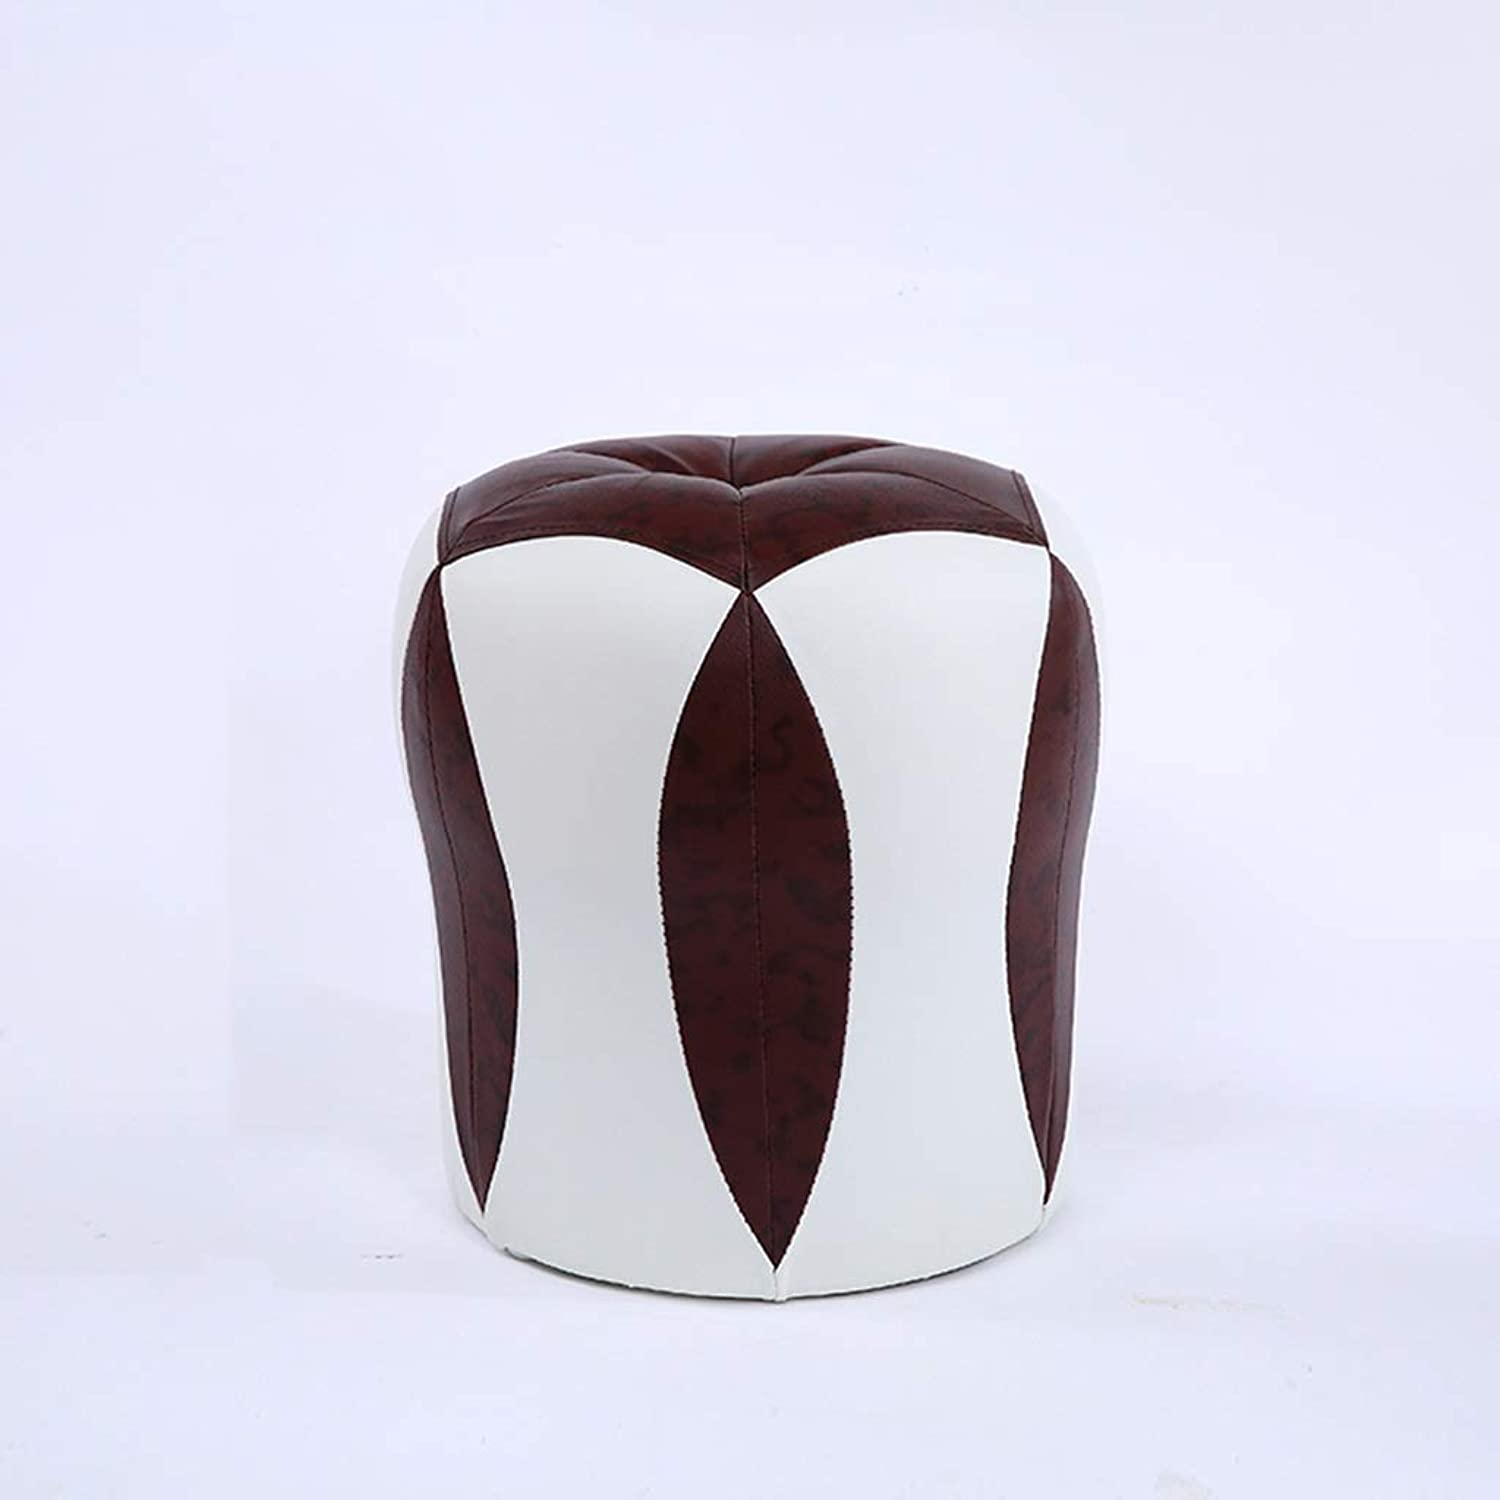 Creative Round Stool Simple Style Footstool Solid Wood Leather Stool Small Sofa Household Decoration (color   Brown)